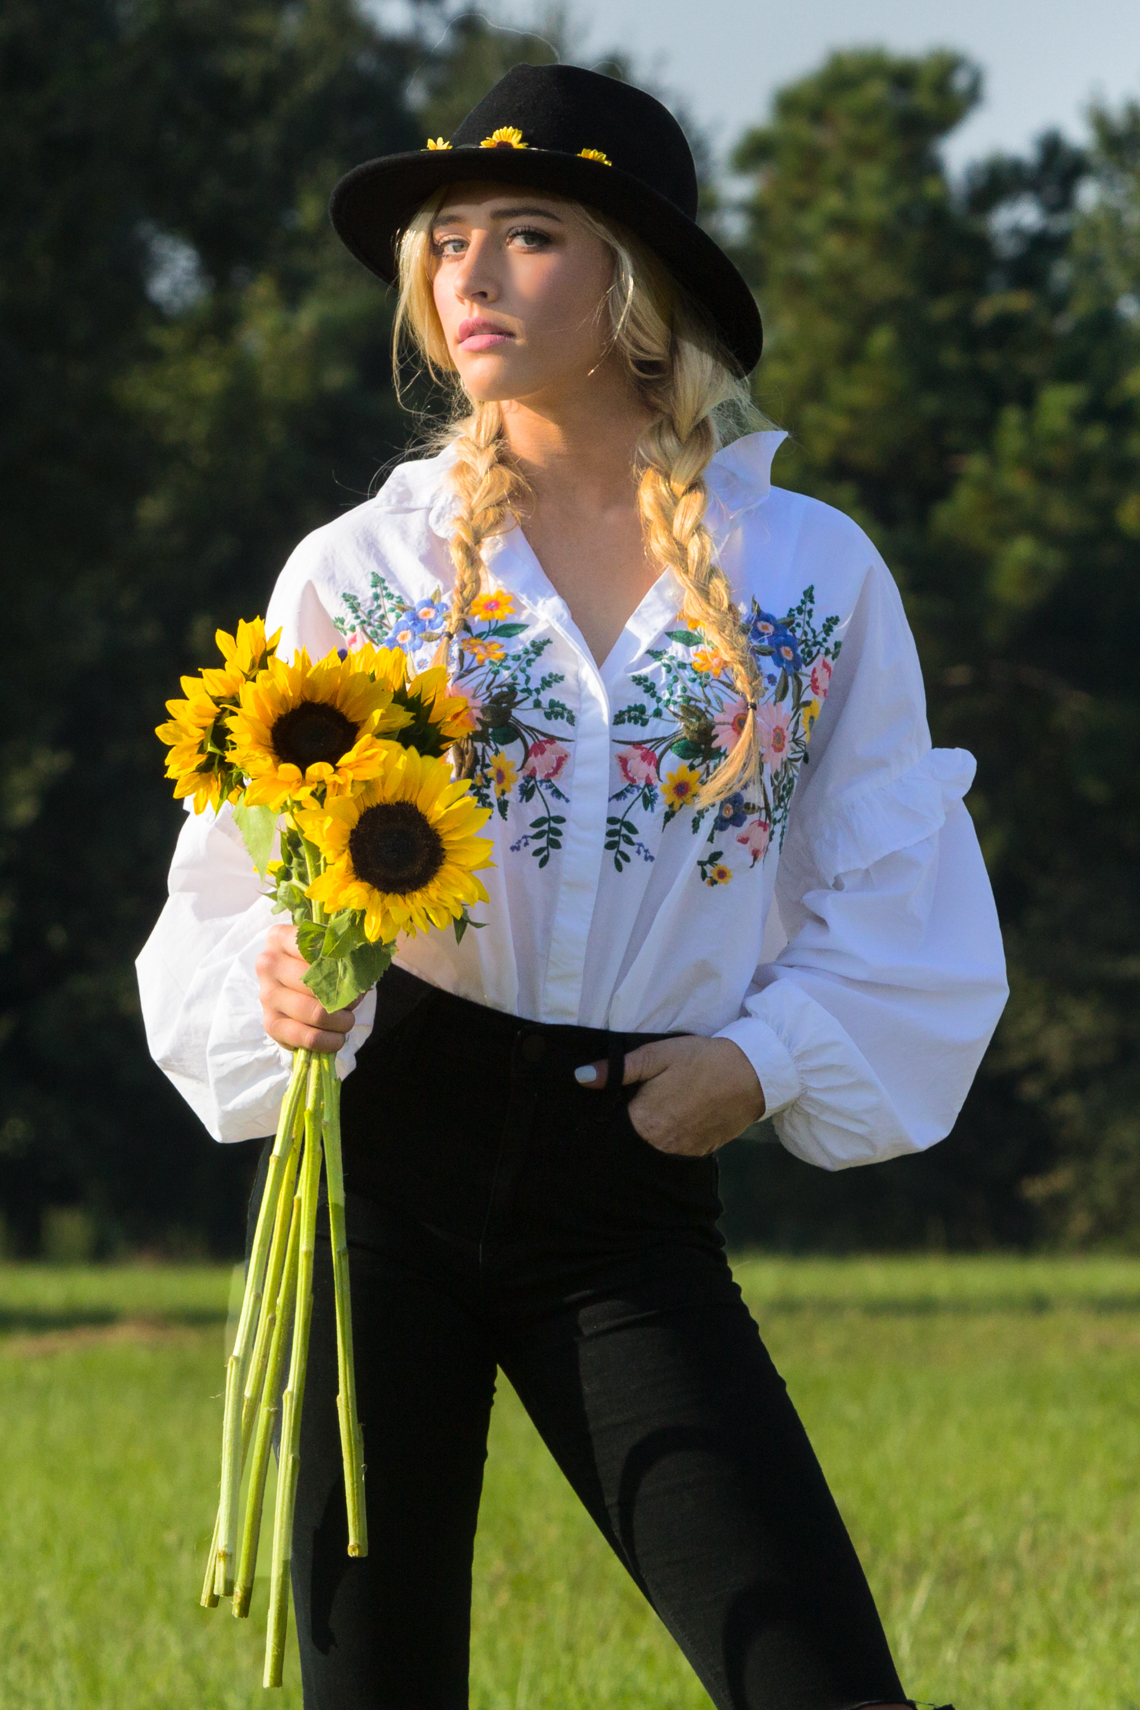 editorial-fashion-sassy-cowgirl-hat-daisies-torn-jeans